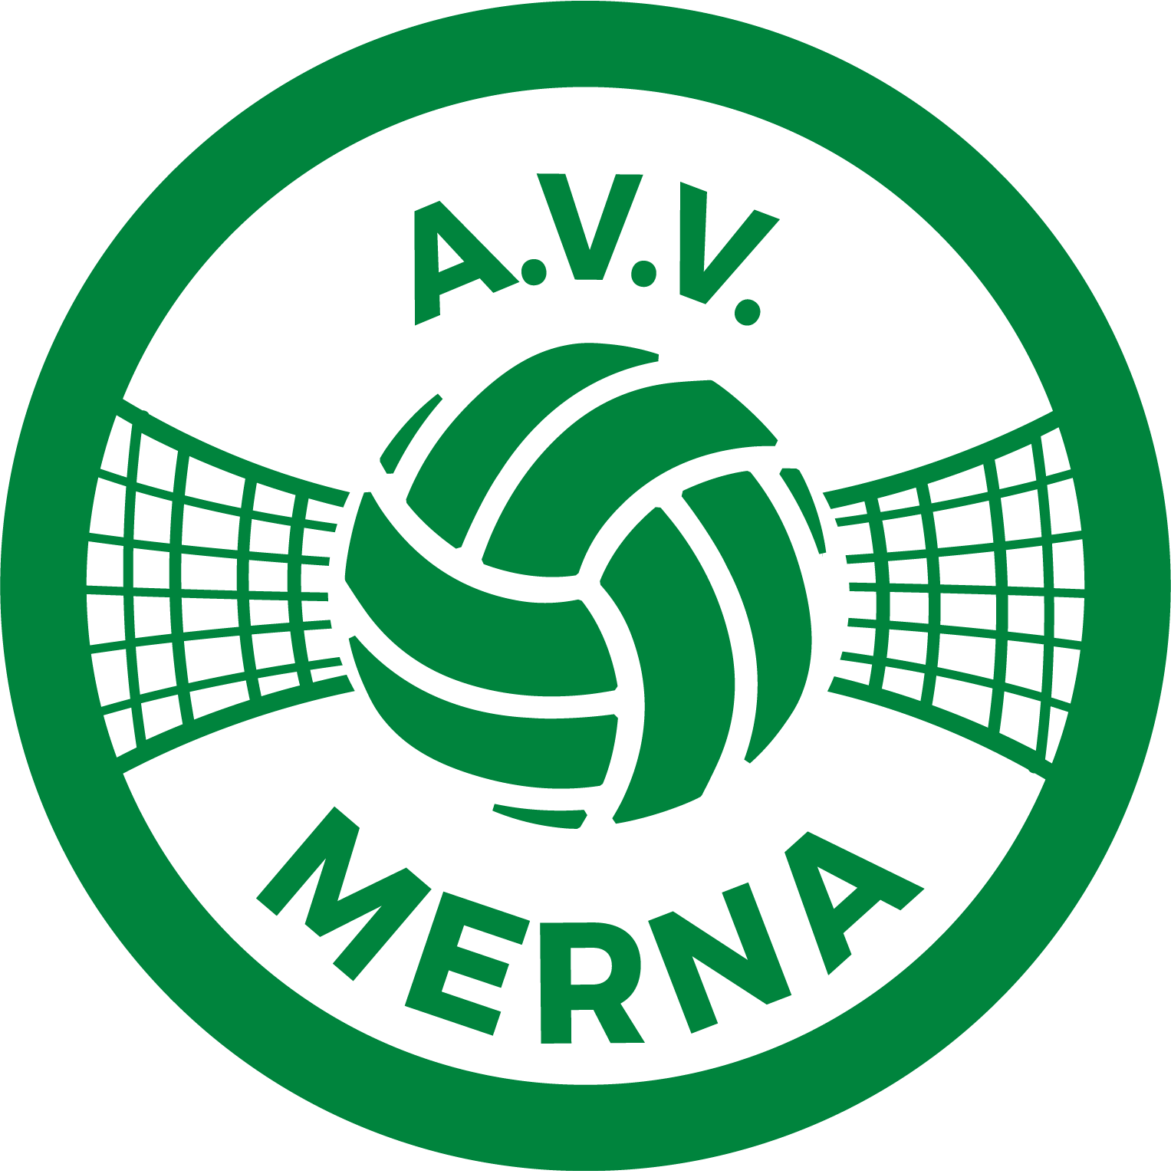 Volleybalvereniging A.V.V. Merna